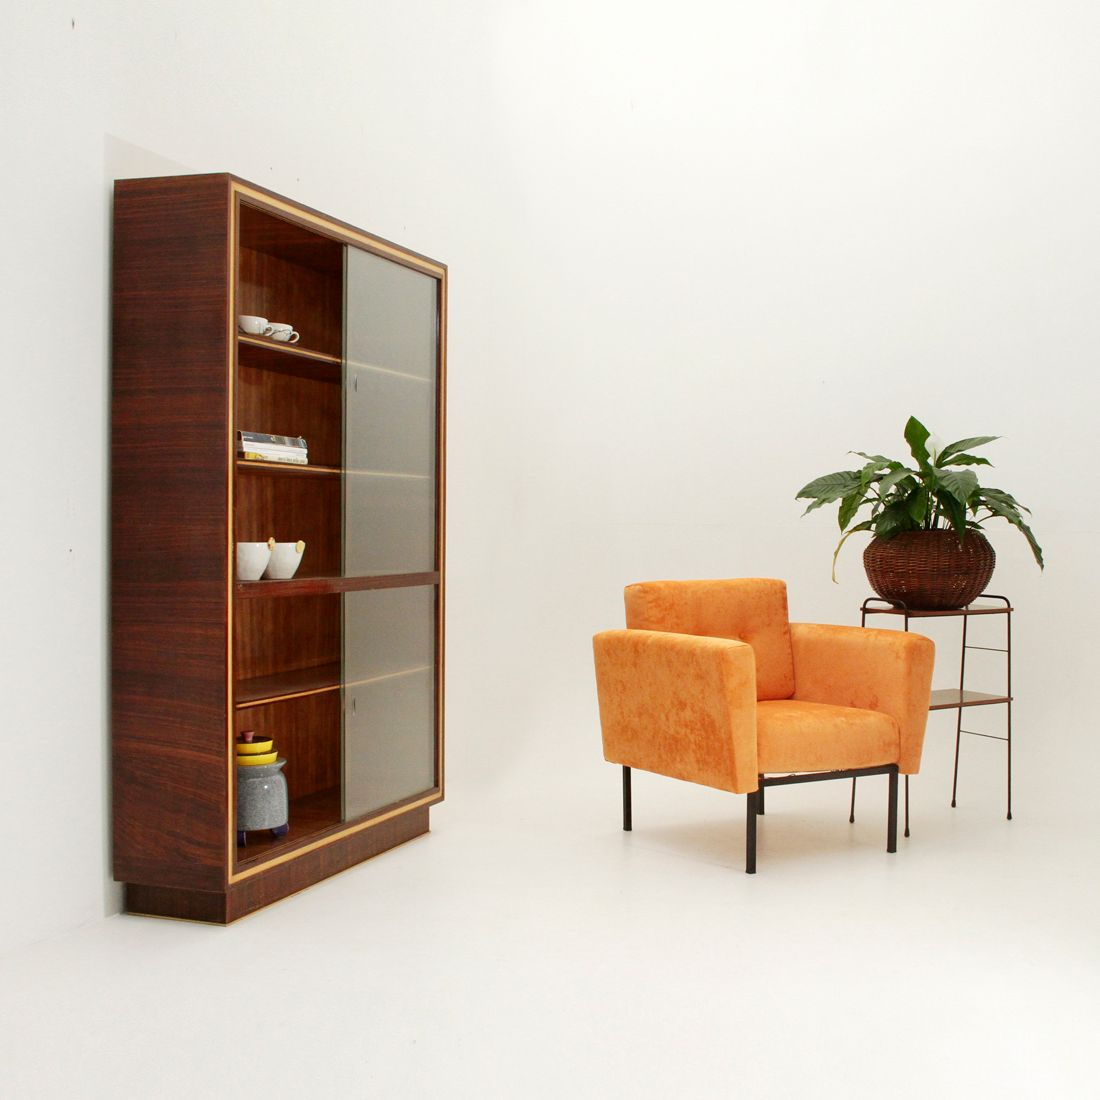 Damaged Kitchen Cabinets For Sale: Italian Rationalist Cabinet, 1940s For Sale At Pamono